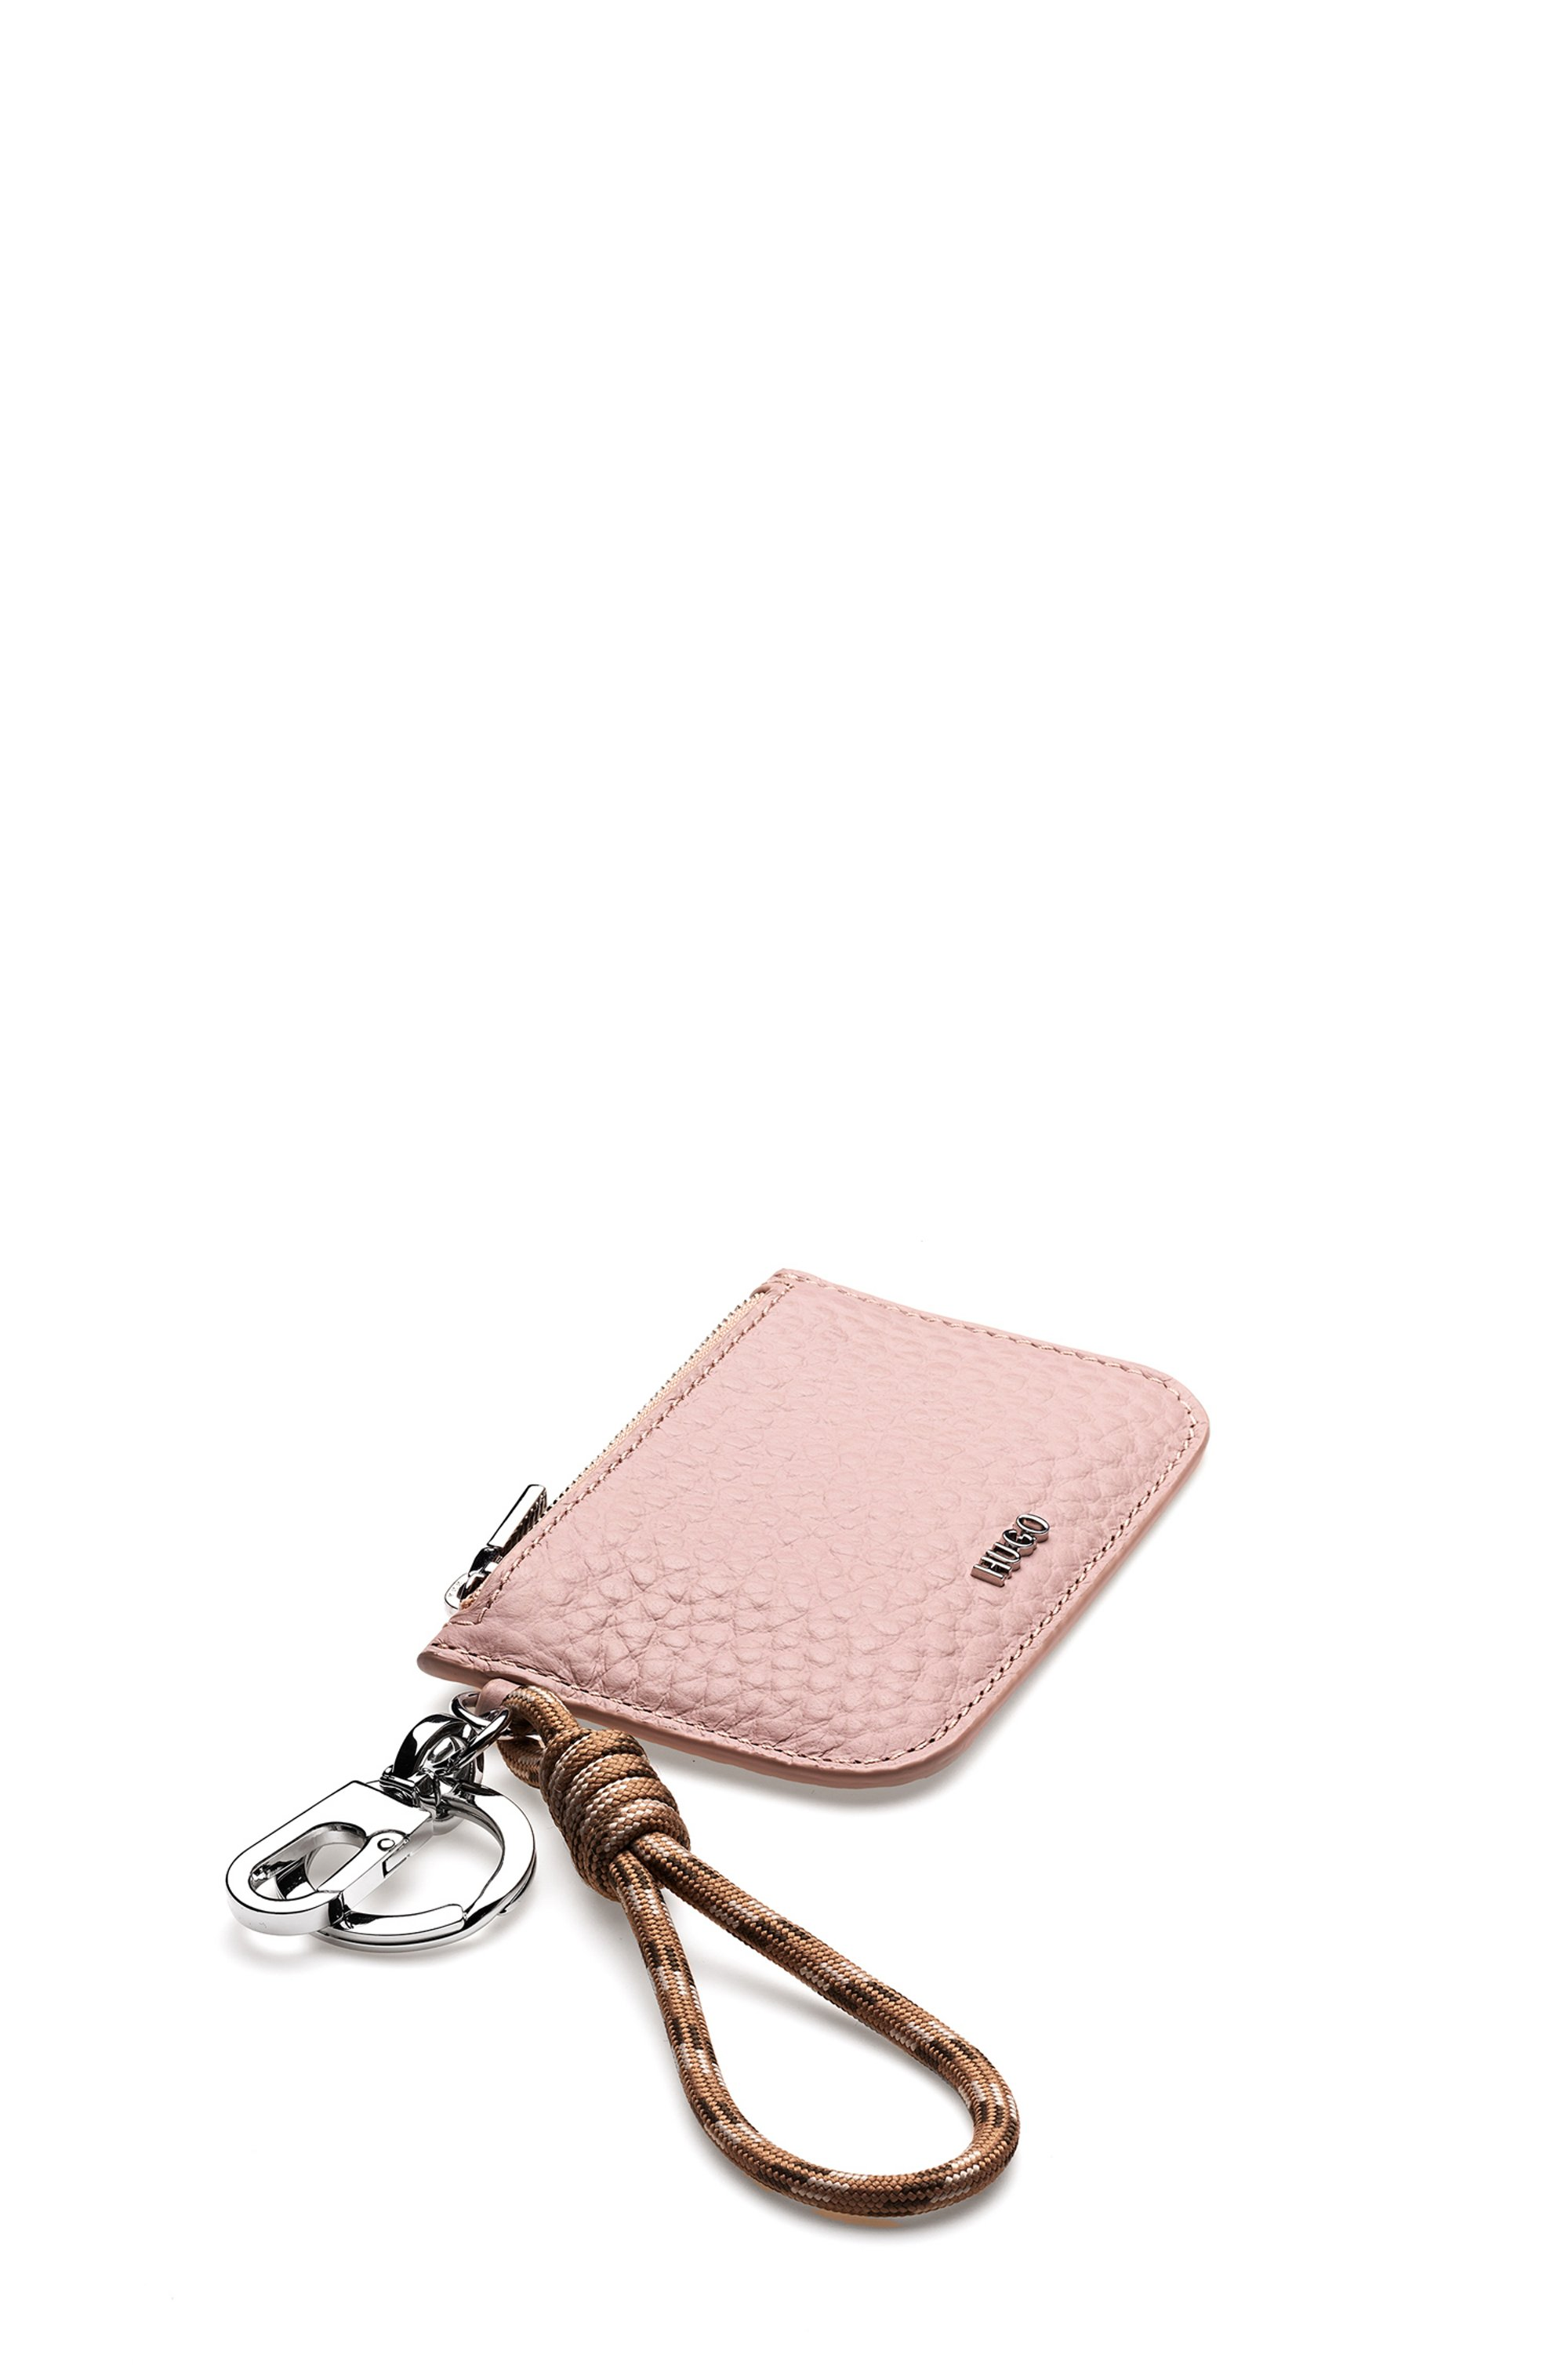 Key ring with rope strap and leather pouch